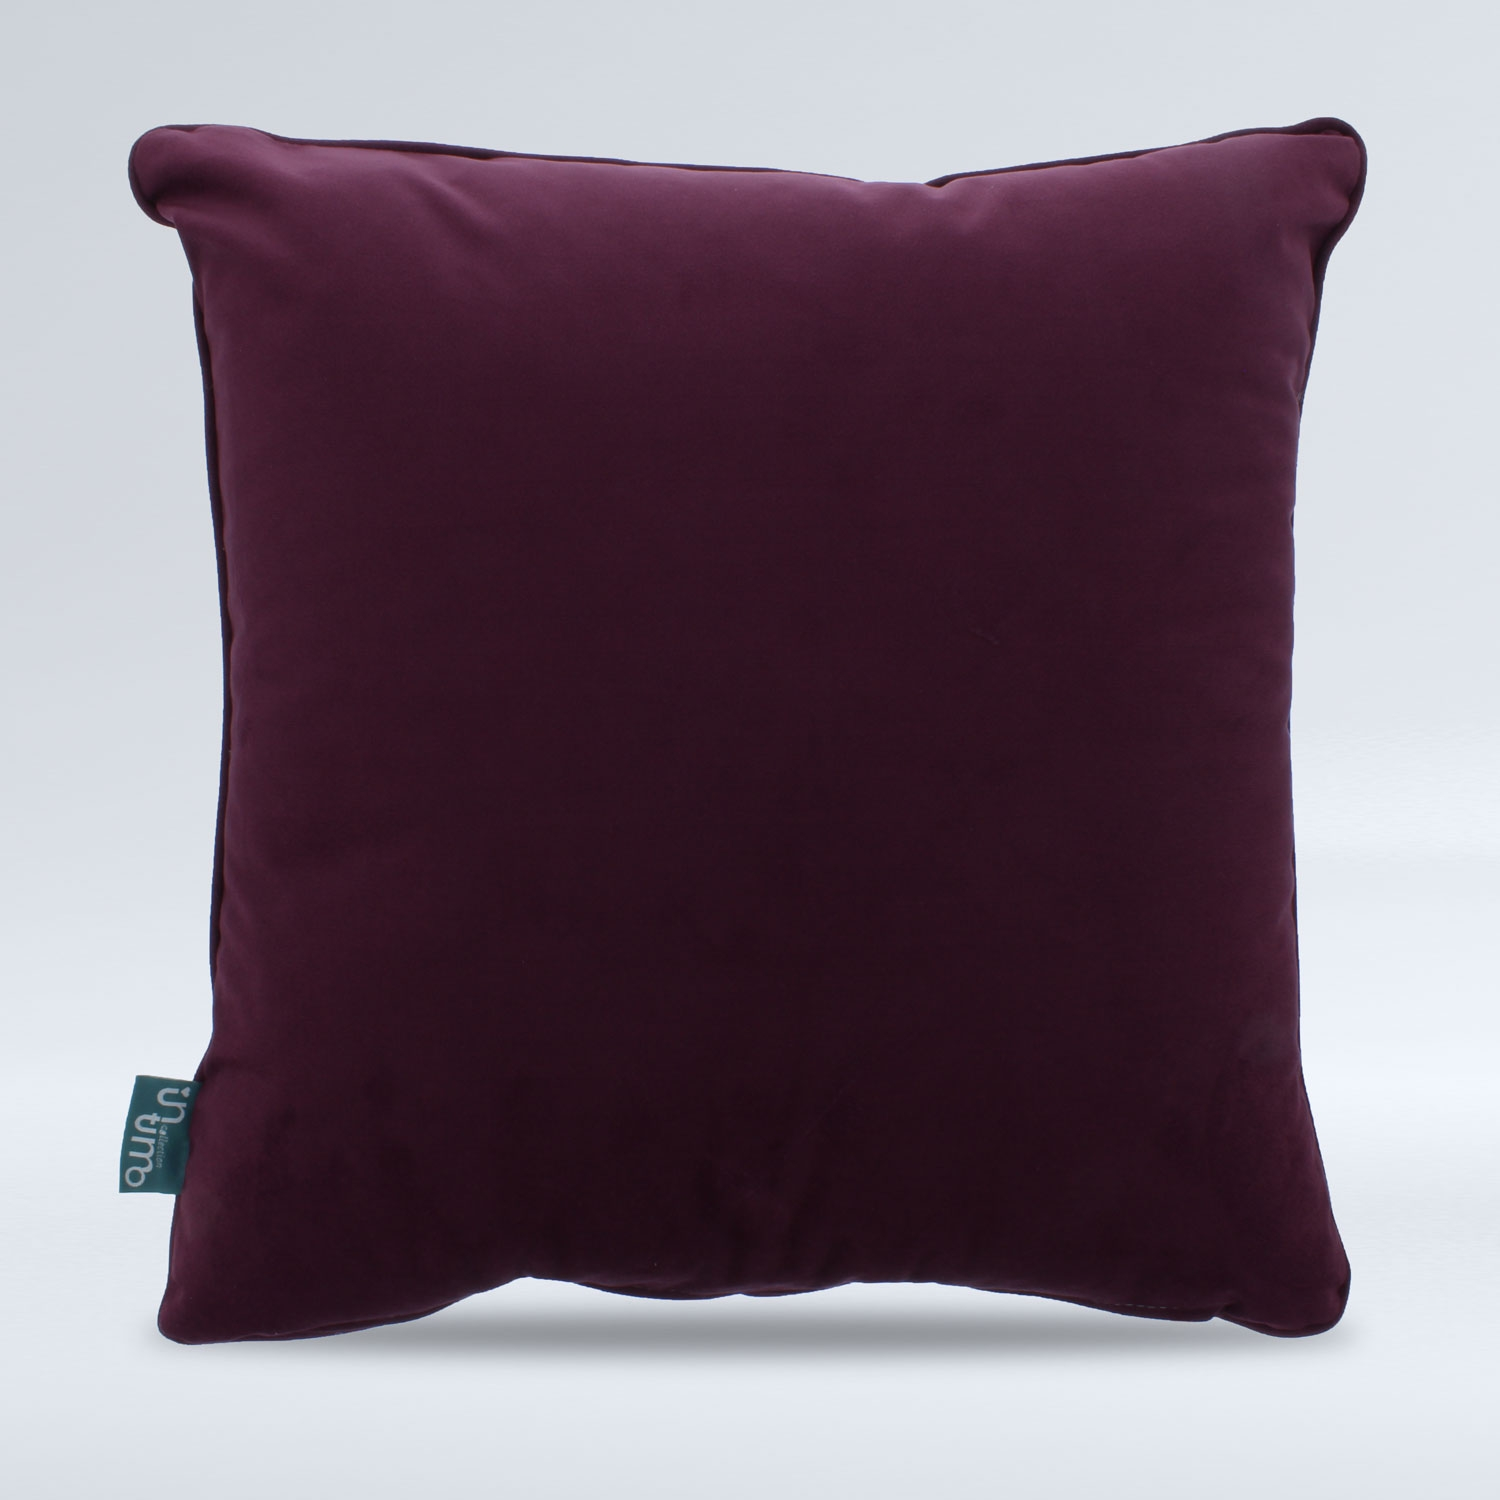 Peacock purple (45P128) - Intimo Collection